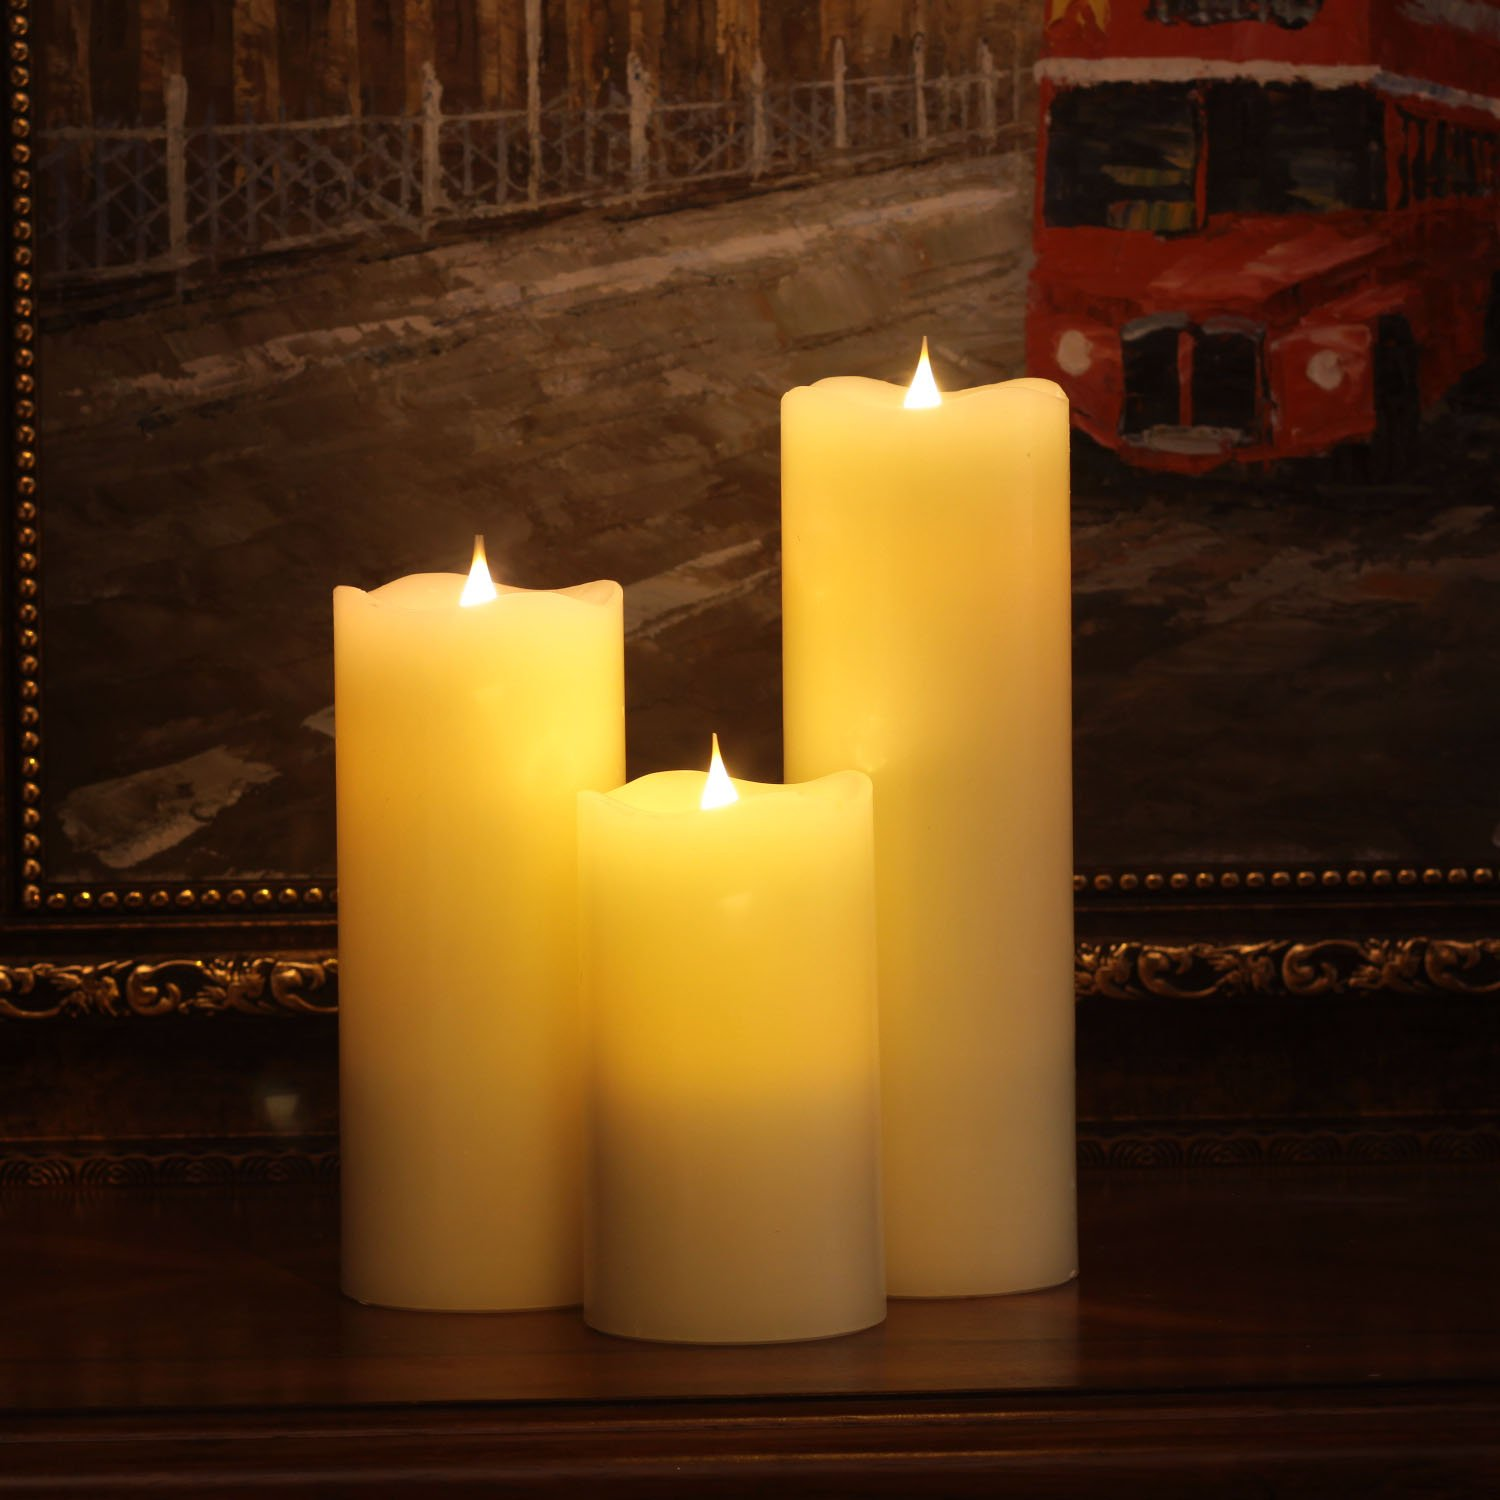 3D Flameless Led Candle with Timer Ivory GiveU 6952303816298 Moving Wick Pillar Candle for Home Decoration 3.75x6.5 Inch